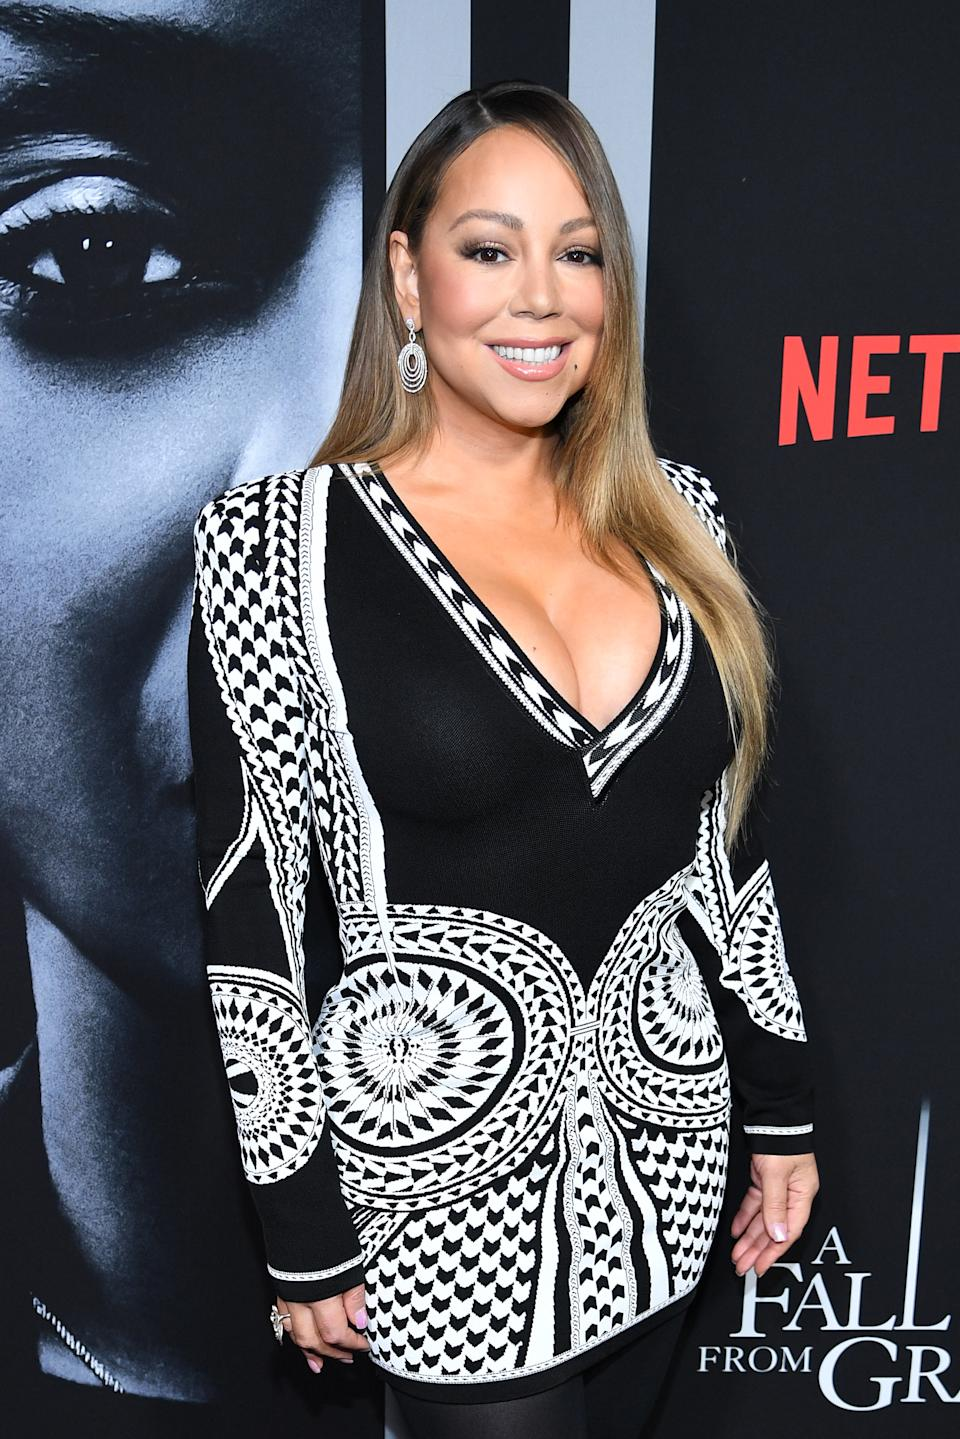 """Mariah Carey attends the premiere of Tyler Perry's """"A Fall From Grace"""" at Metrograph on January 13, 2020 in New York City. (Photo by Dimitrios Kambouris/WireImage)"""